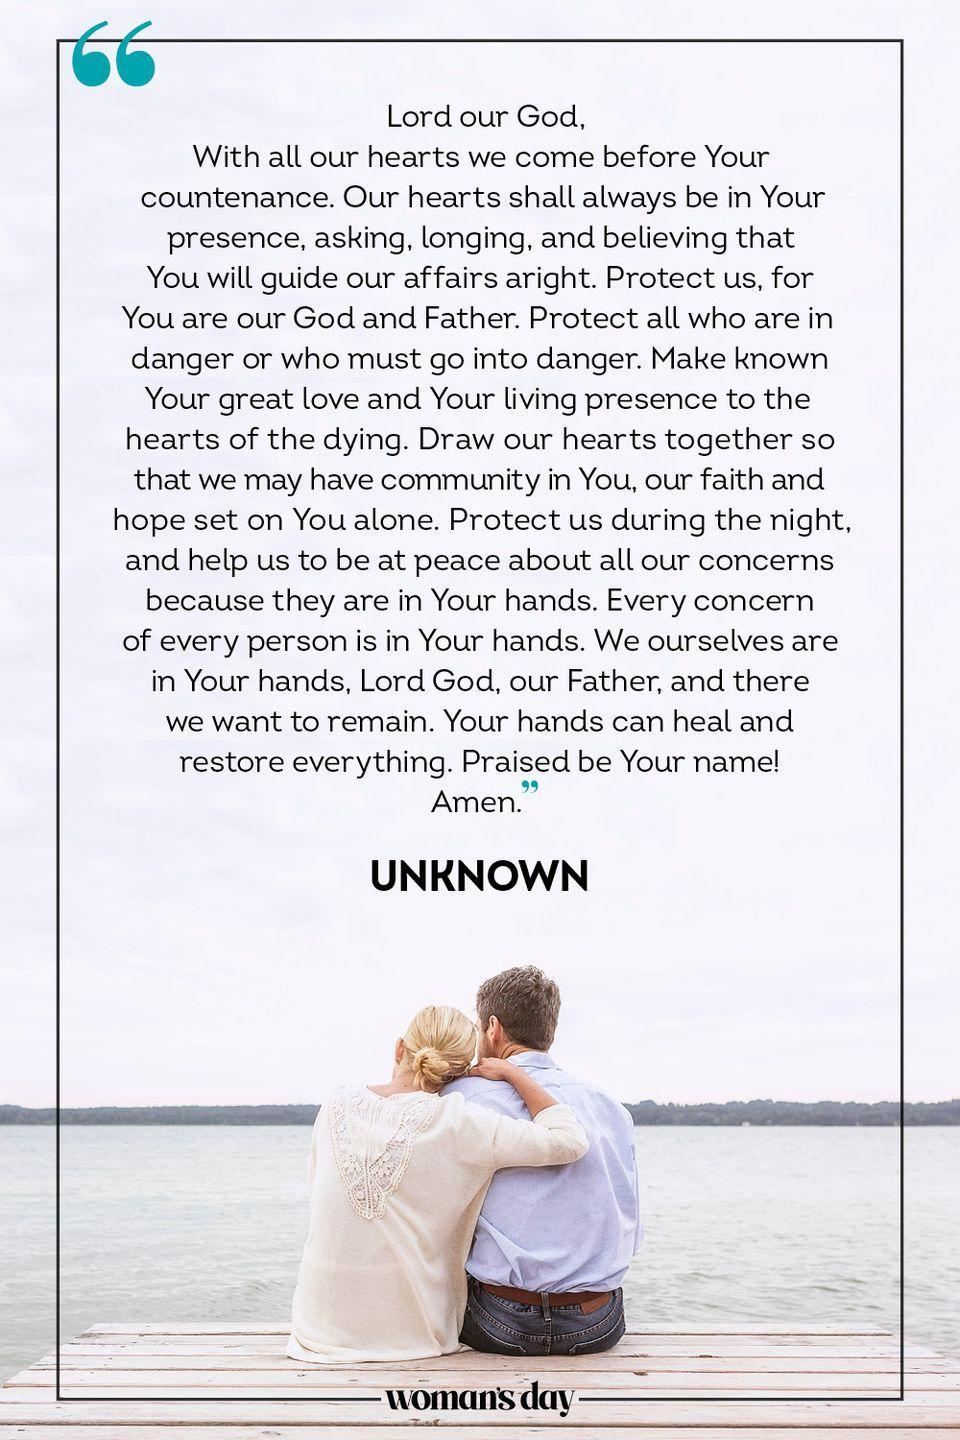 """<p>Lord our God, </p><p>With all our hearts we come before Your countenance. Our hearts shall always be in Your presence, asking, longing, and believing that You will guide our affairs aright. Protect us, for You are our God and Father. Protect all who are in danger or who must go into danger. Make known Your great love and Your living presence to the hearts of the dying. Draw our hearts together so that we may have community in You, our faith and hope set on You alone. Protect us during the night, and help us to be at peace about all our concerns because they are in Your hands. Every concern of every person is in Your hands. We ourselves are in Your hands, Lord God, our Father, and there we want to remain. Your hands can heal and restore everything. </p><p>Praised be Your name! </p><p>Amen. </p><p>— <a href=""""https://www.plough.com/en/subscriptions/daily-prayer/july/daily-prayer-for-july-31"""" rel=""""nofollow noopener"""" target=""""_blank"""" data-ylk=""""slk:Unknown"""" class=""""link rapid-noclick-resp"""">Unknown</a></p>"""